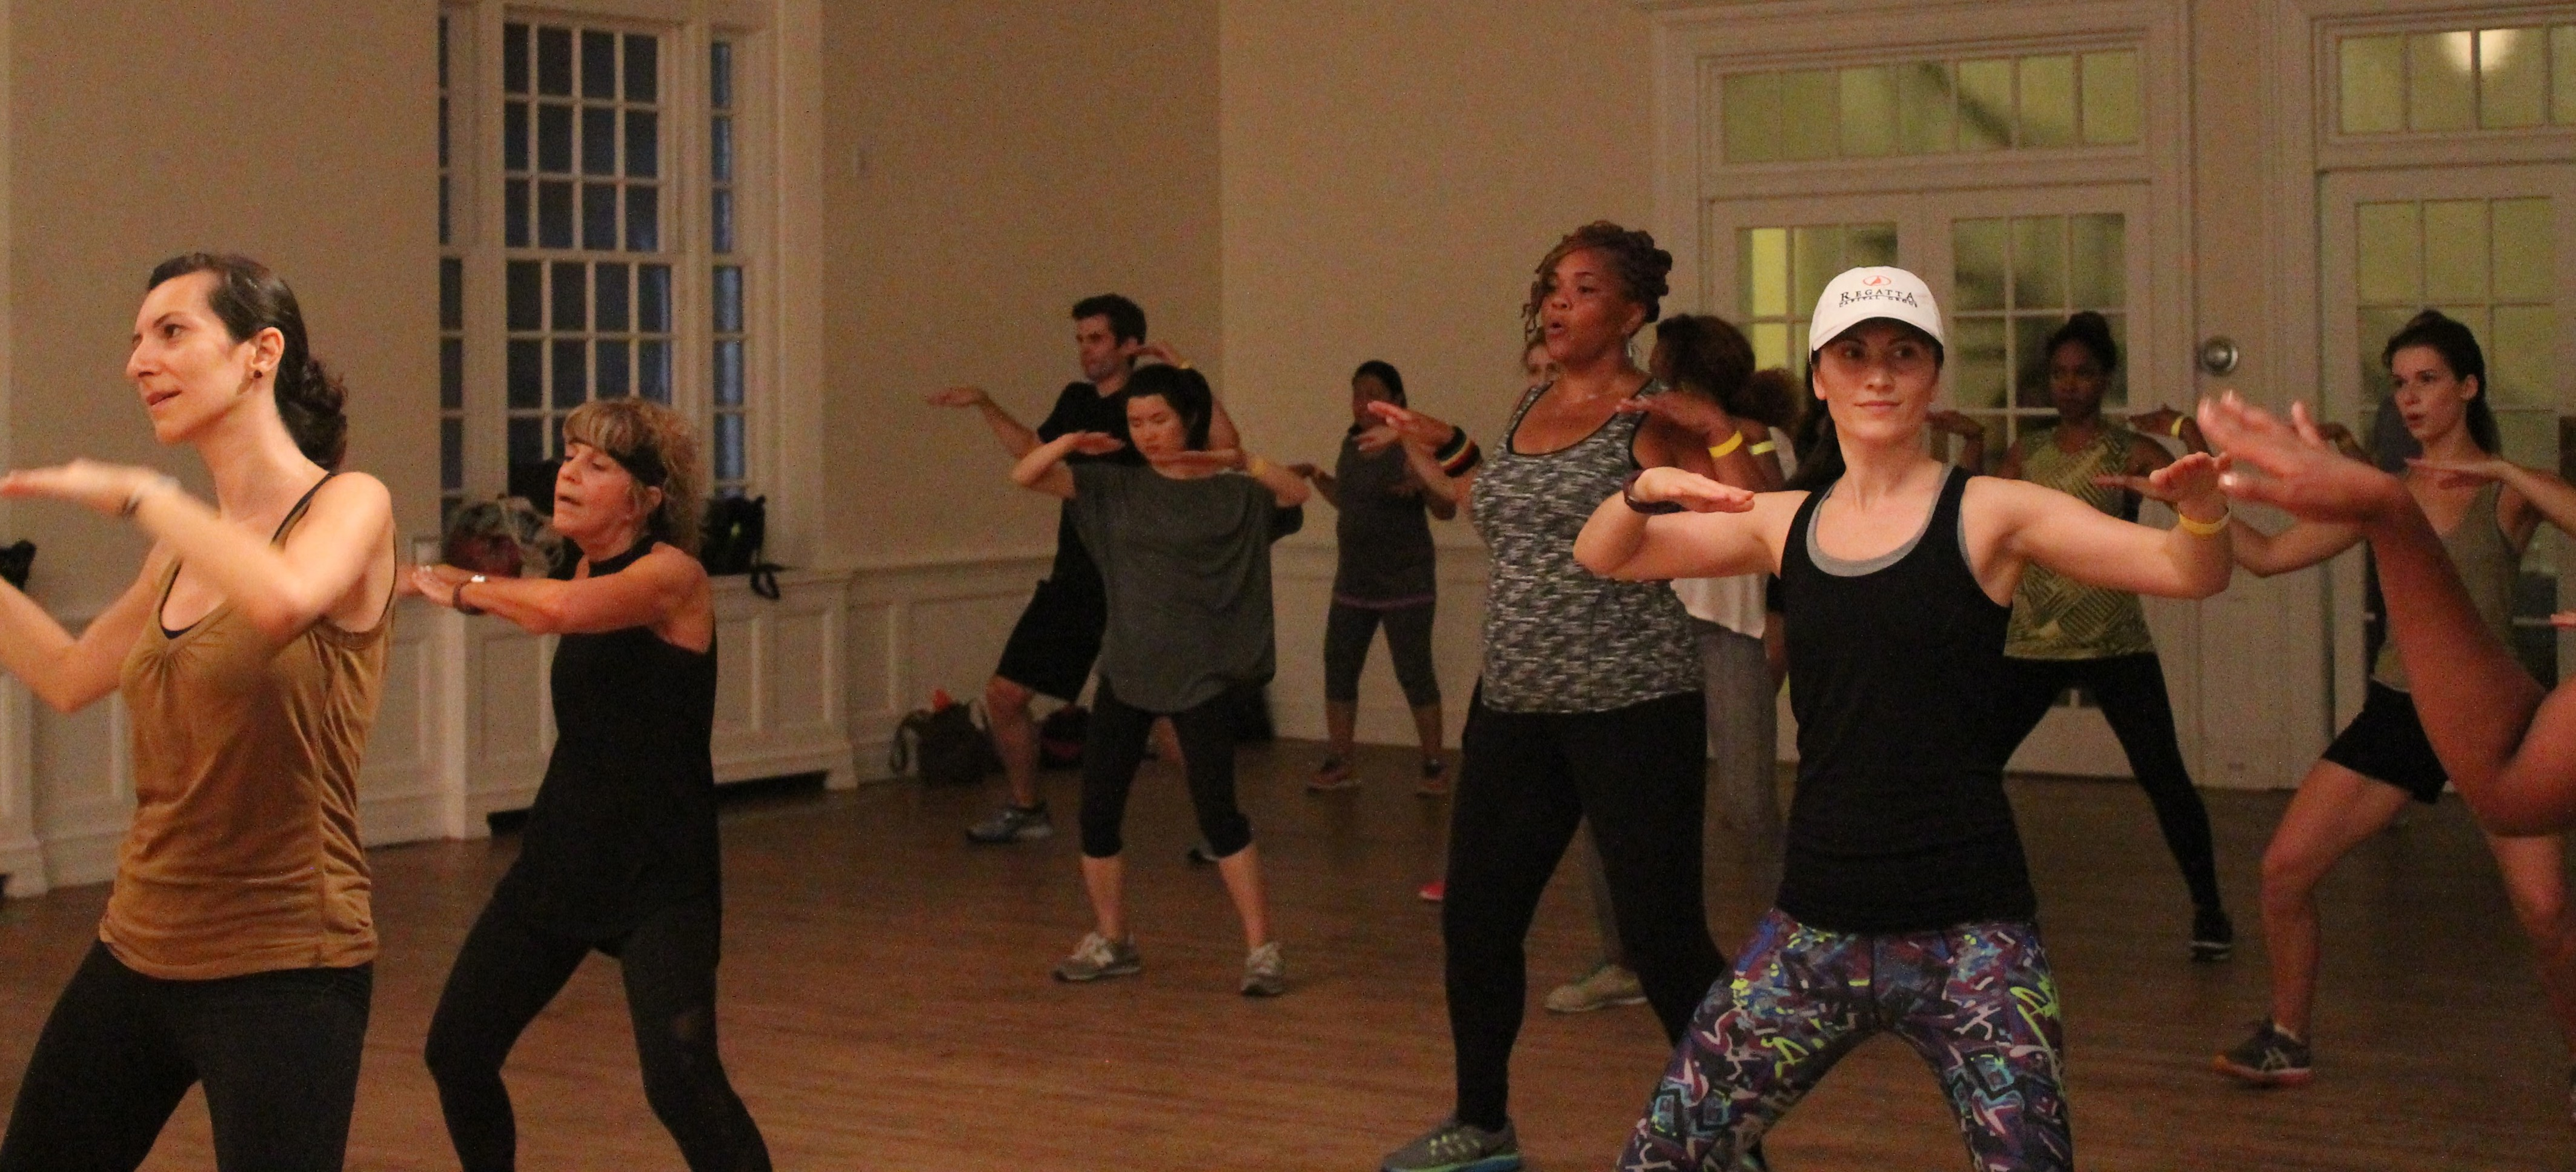 Philly Dance Day Zumba class. Source.